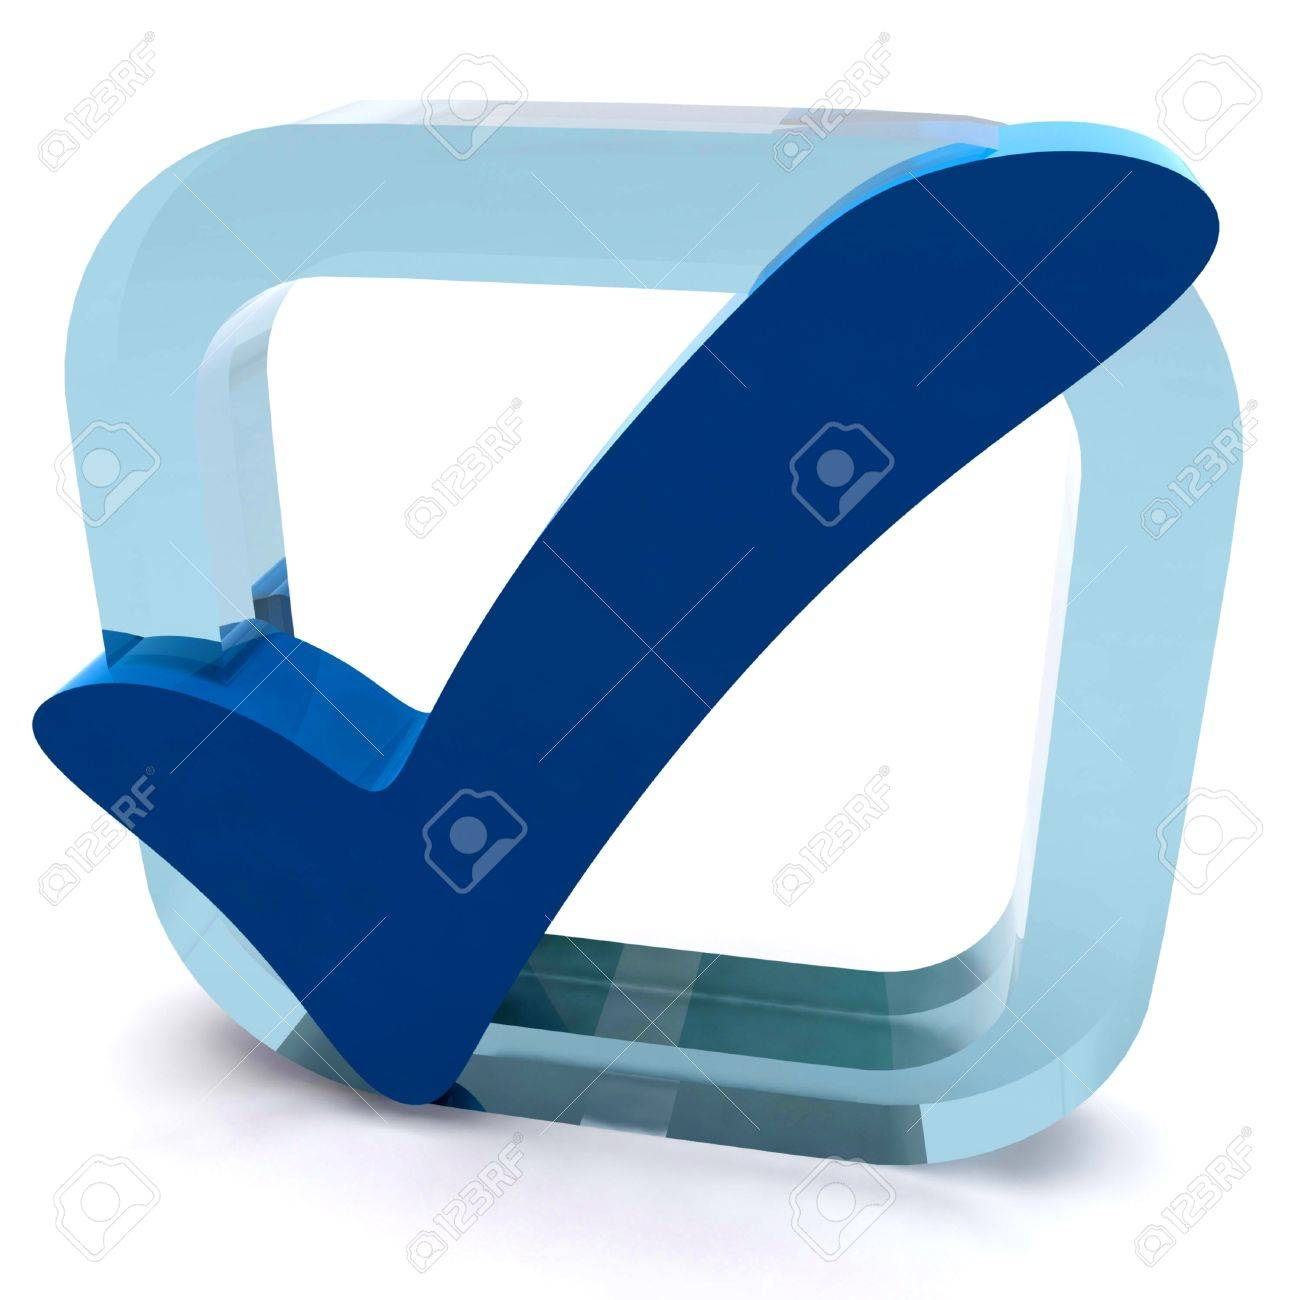 Boxed blue tick showing quality excellence approved passed satisfied boxed blue tick showing quality excellence approved passed satisfied stock photo 16517897 buycottarizona Gallery